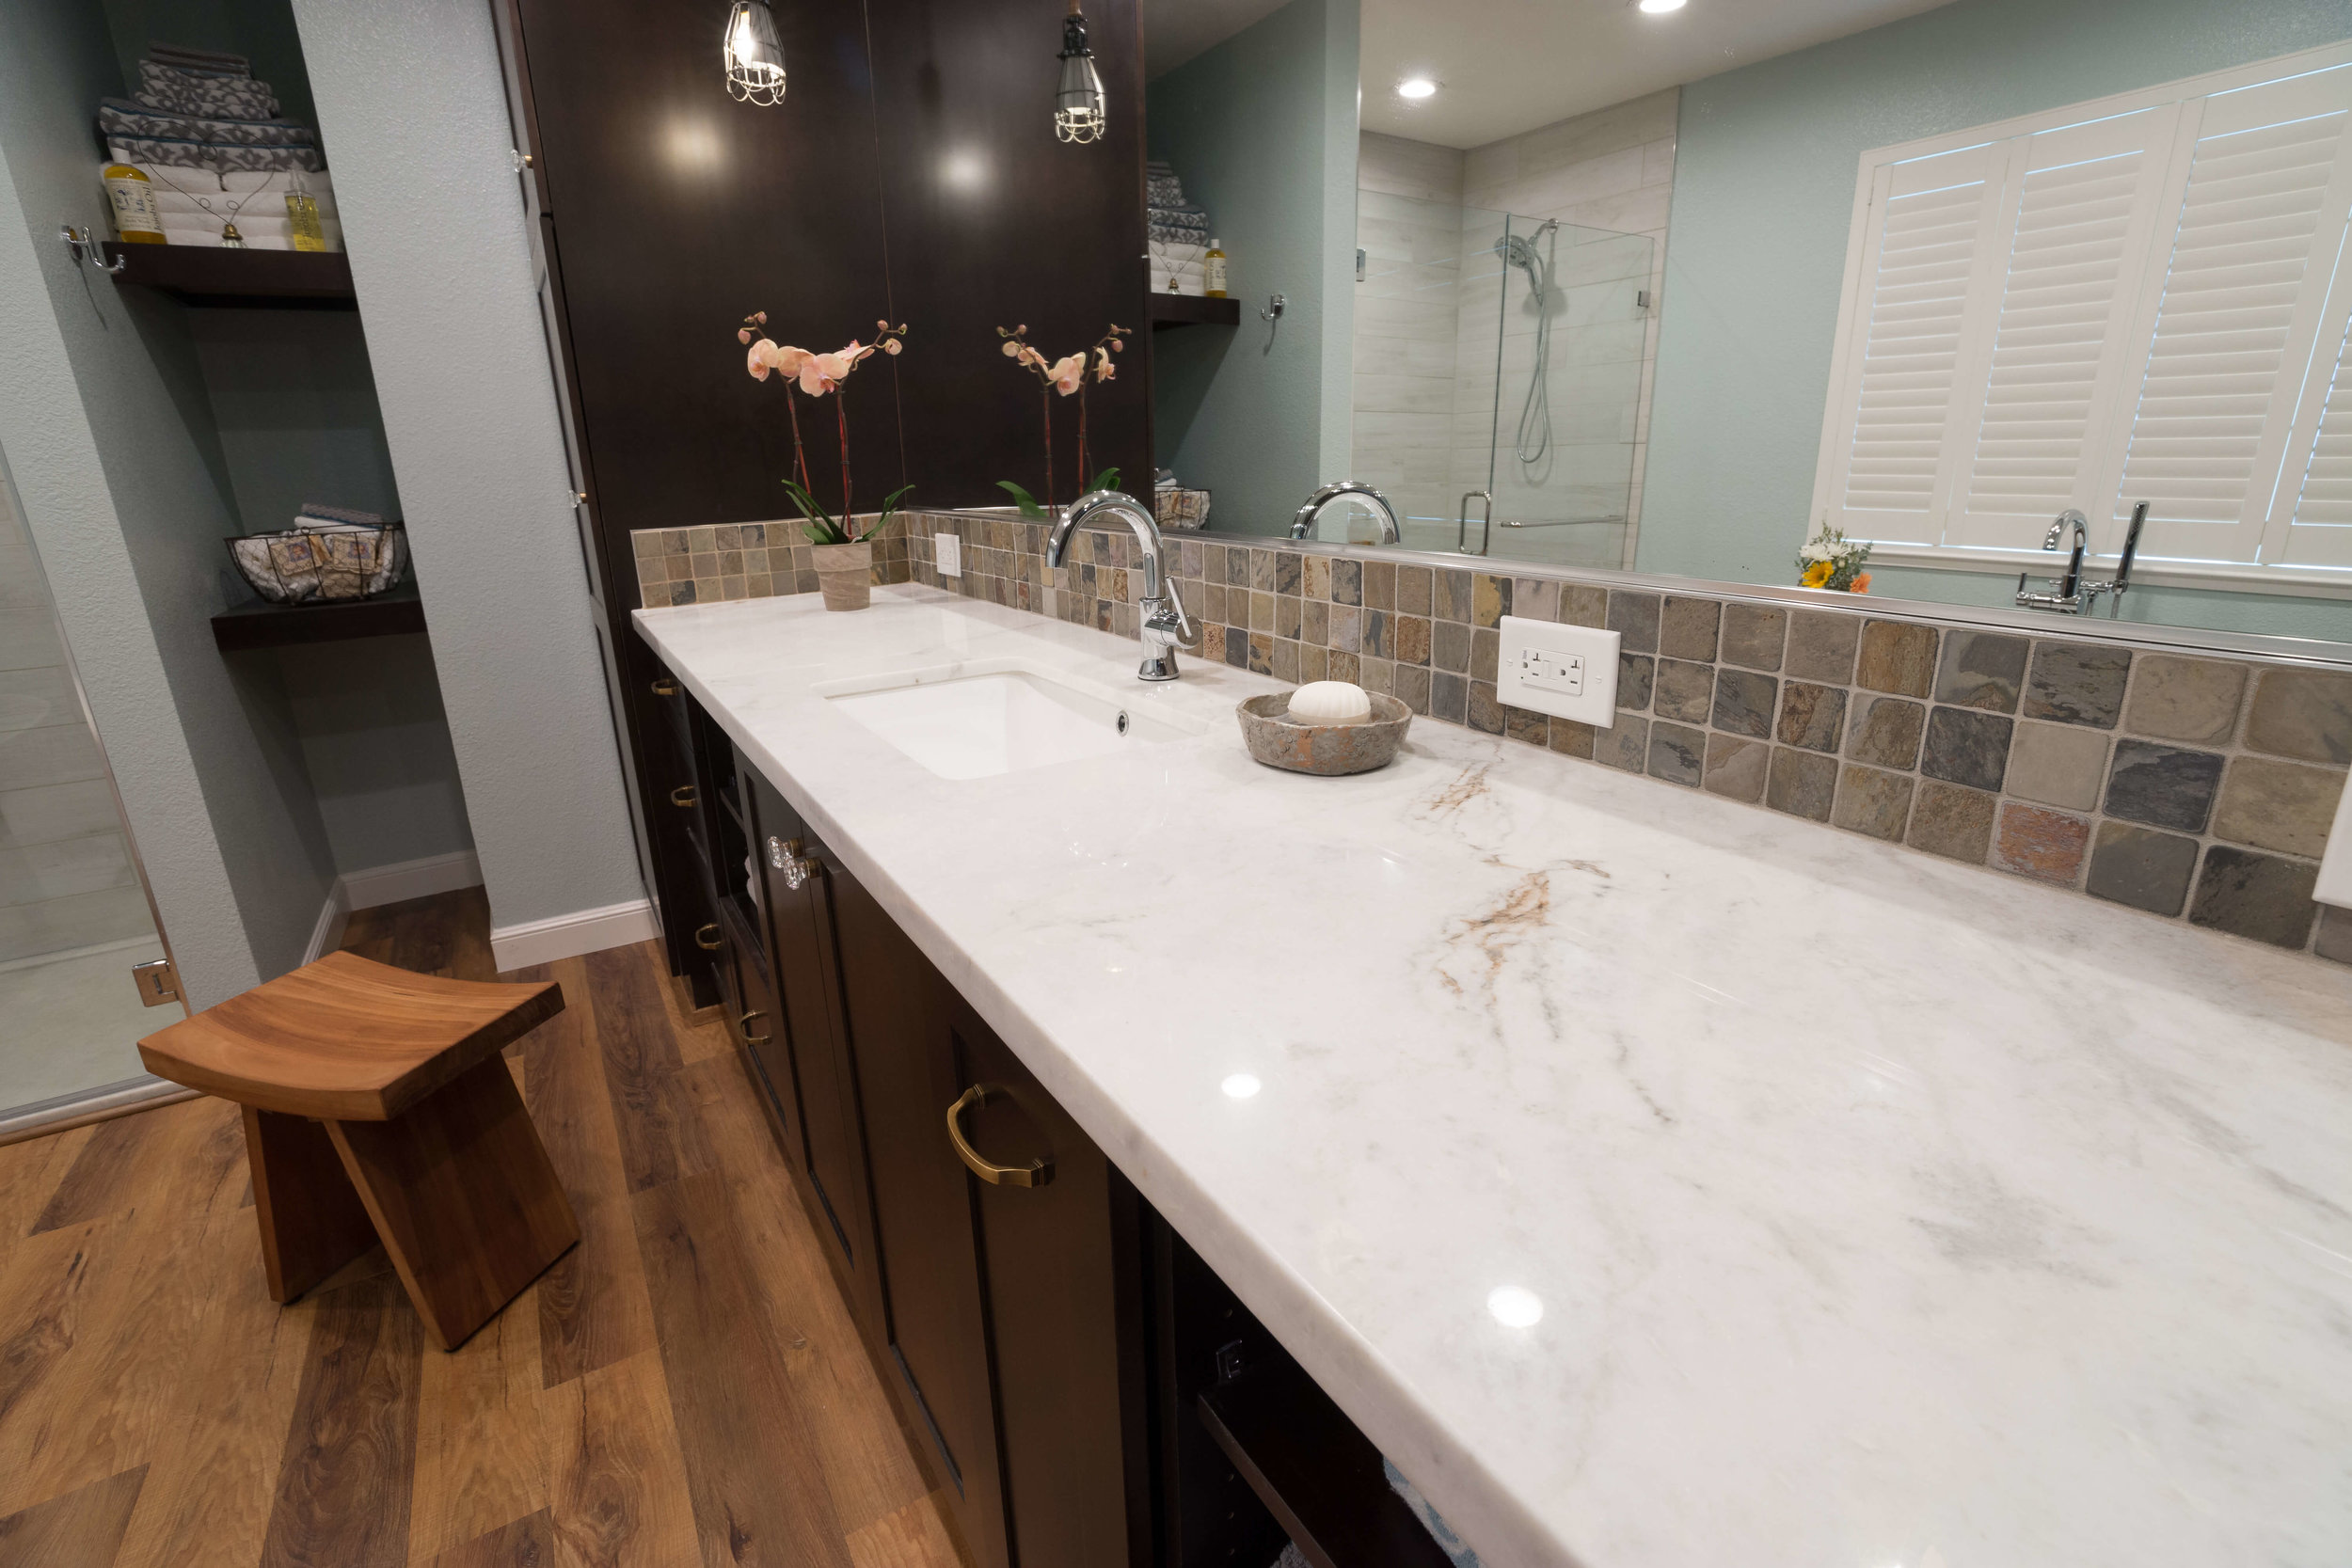 Undermount sink, marble counter, expansive dark wood cabinets and rustic backsplash combine warmth, practicality and elegance.